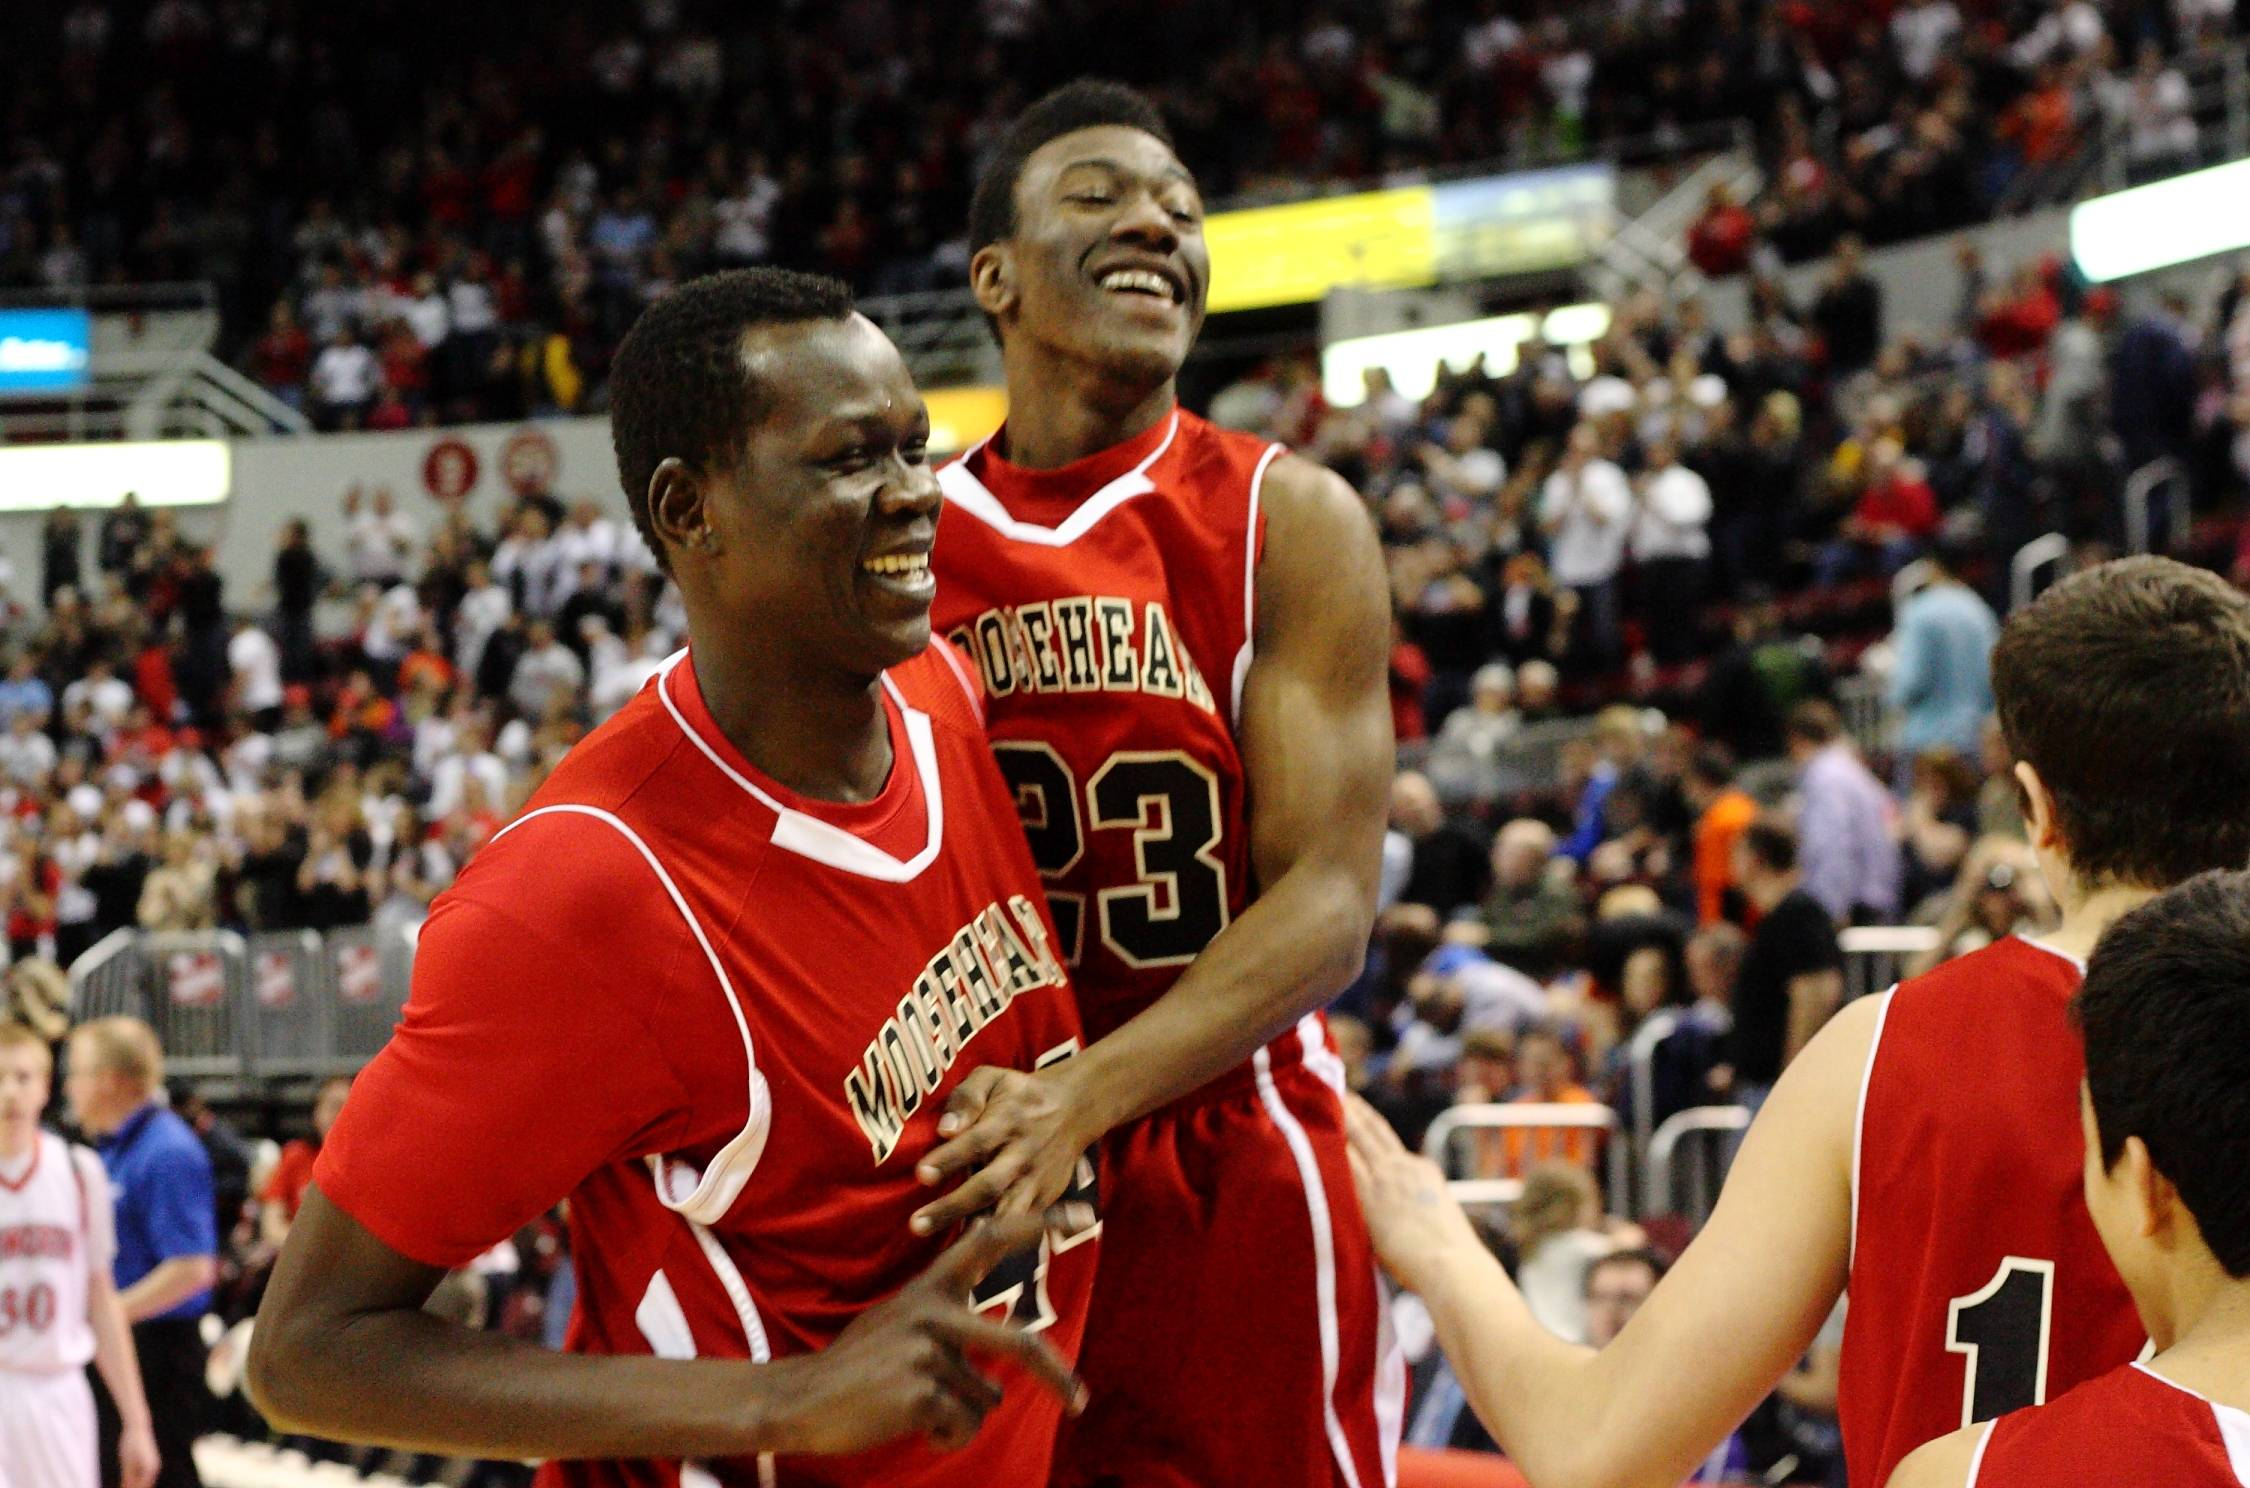 Mooseheart's Akim Nyang and Josh Tucker celebrate their Class A state title game victory over Heyworth in Peoria on Saturday. In their first final four appearance, the Red Ramblers brought home the basketball program's first state title after a 63-47 victory.